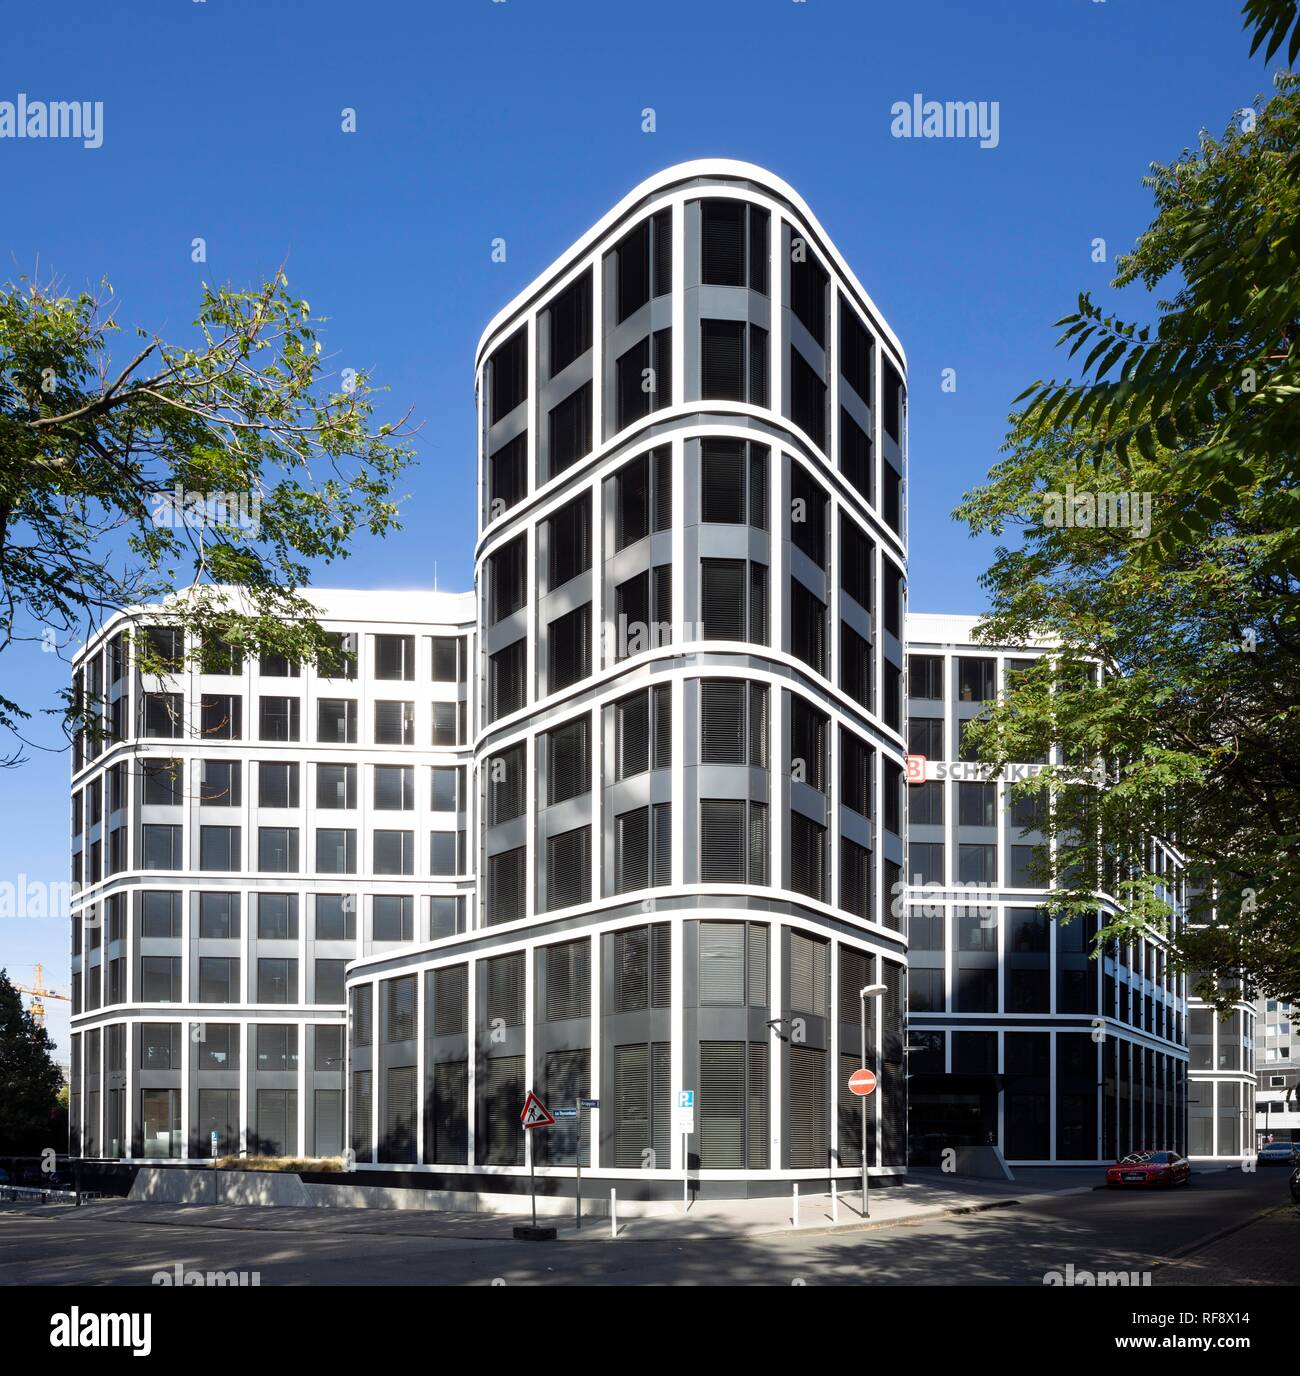 Head Office Logistics Company DB Schenker, Essen, Ruhr Area, North Rhine-Westphalia, Germany - Stock Image